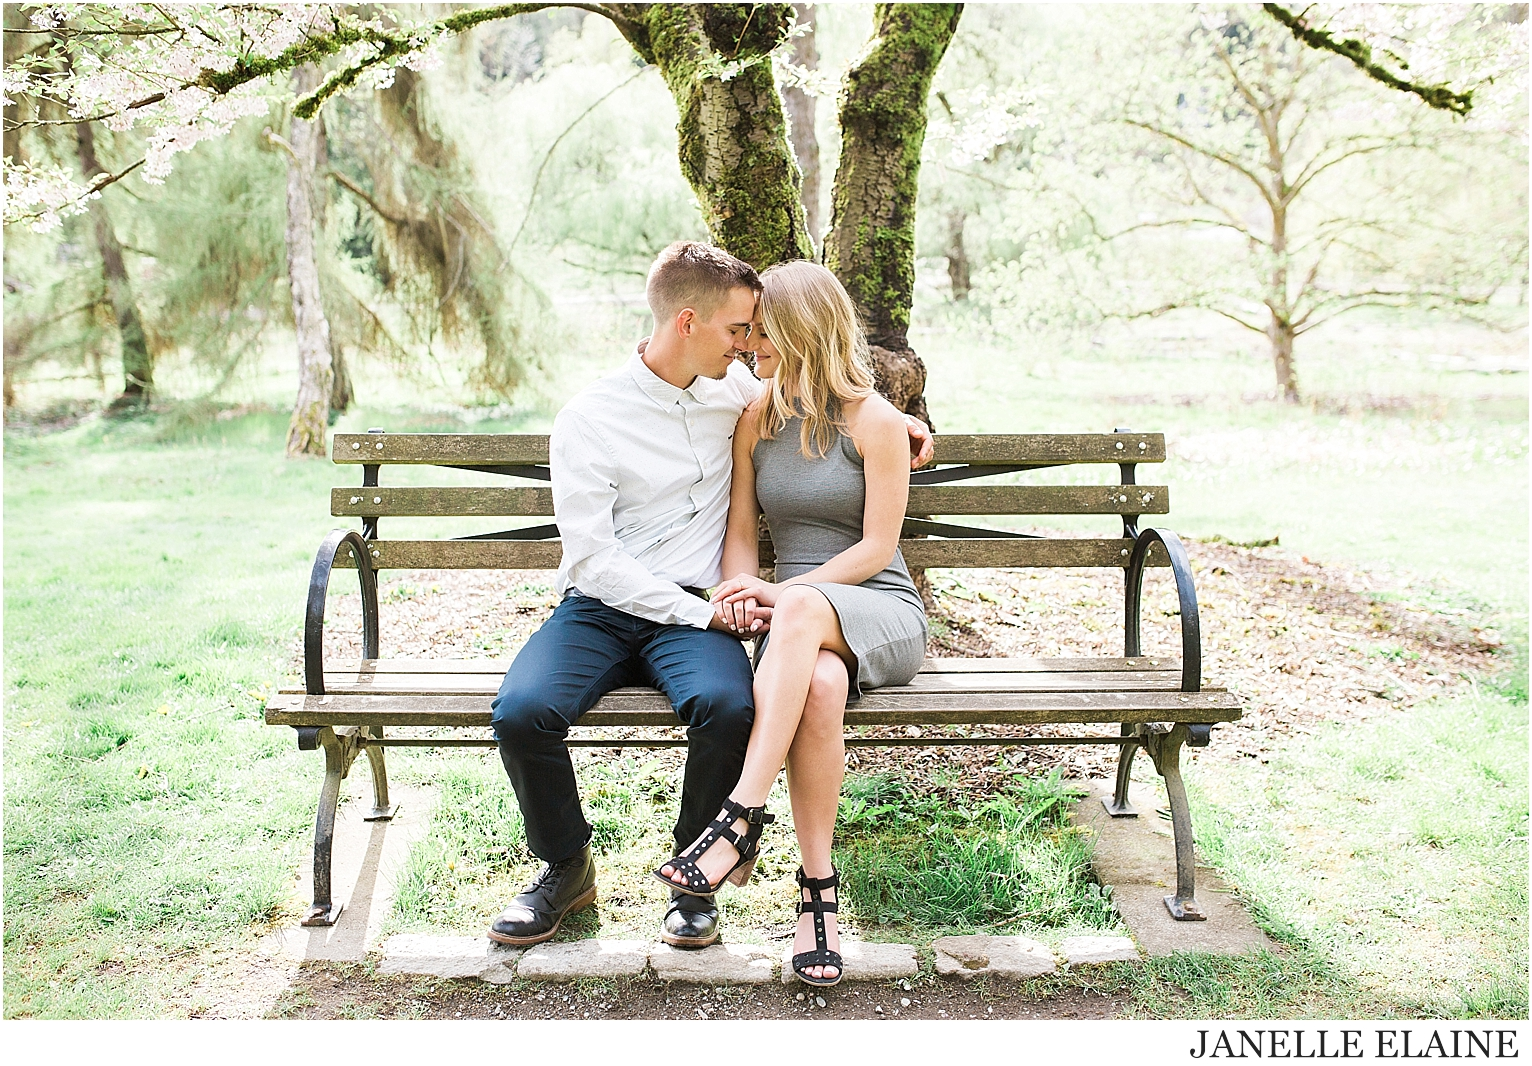 tricia and nate engagement photos-janelle elaine photography-59.jpg